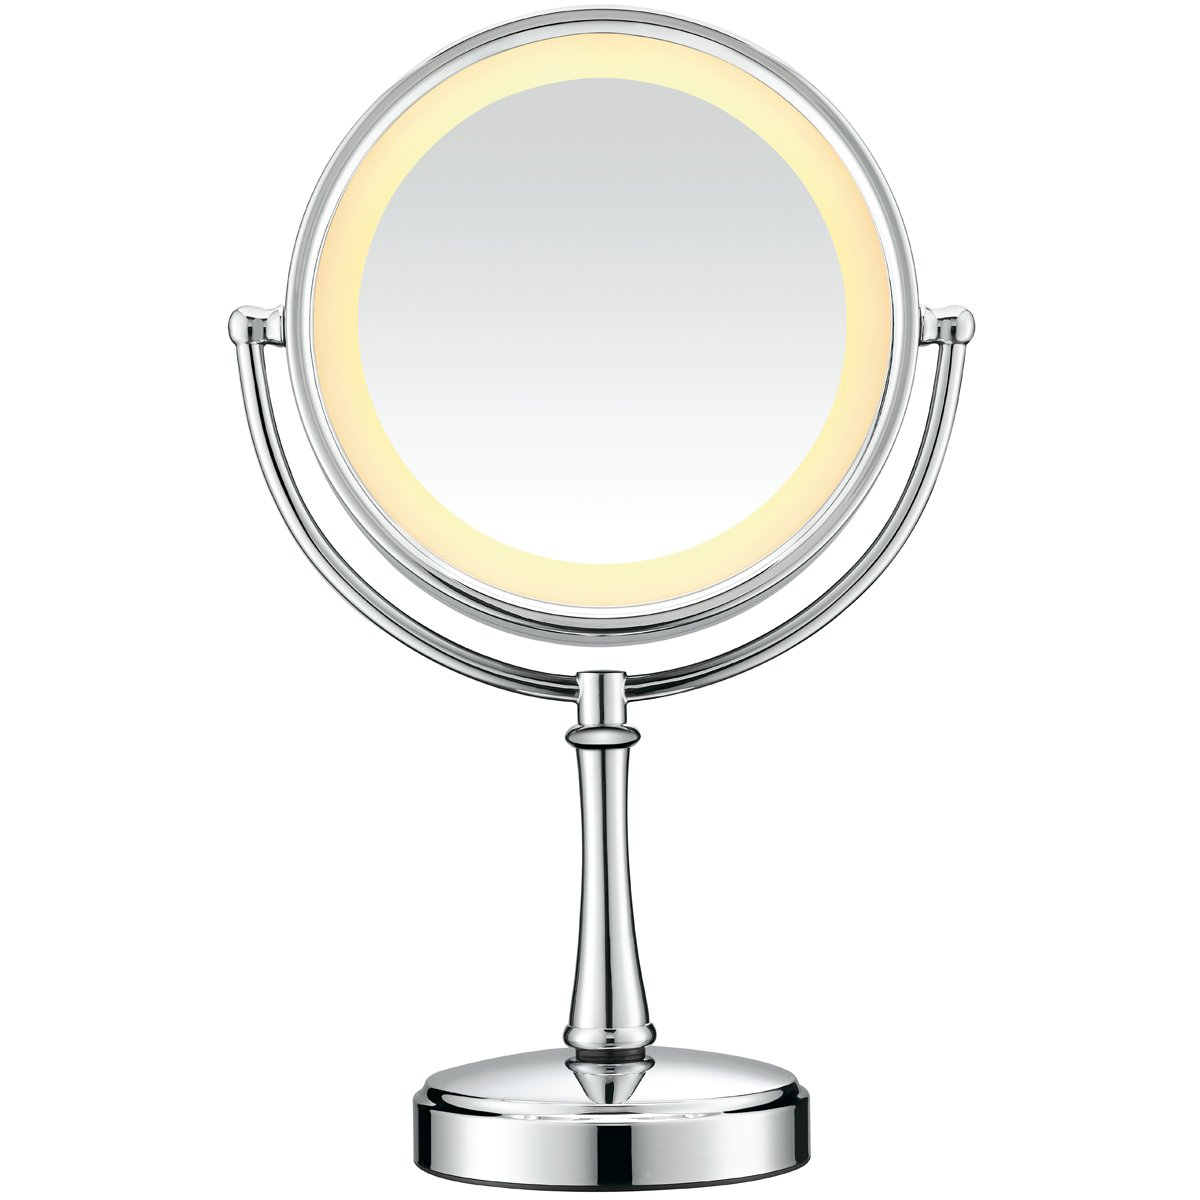 conair touch control double sided lighted mirror polished chrome. Black Bedroom Furniture Sets. Home Design Ideas